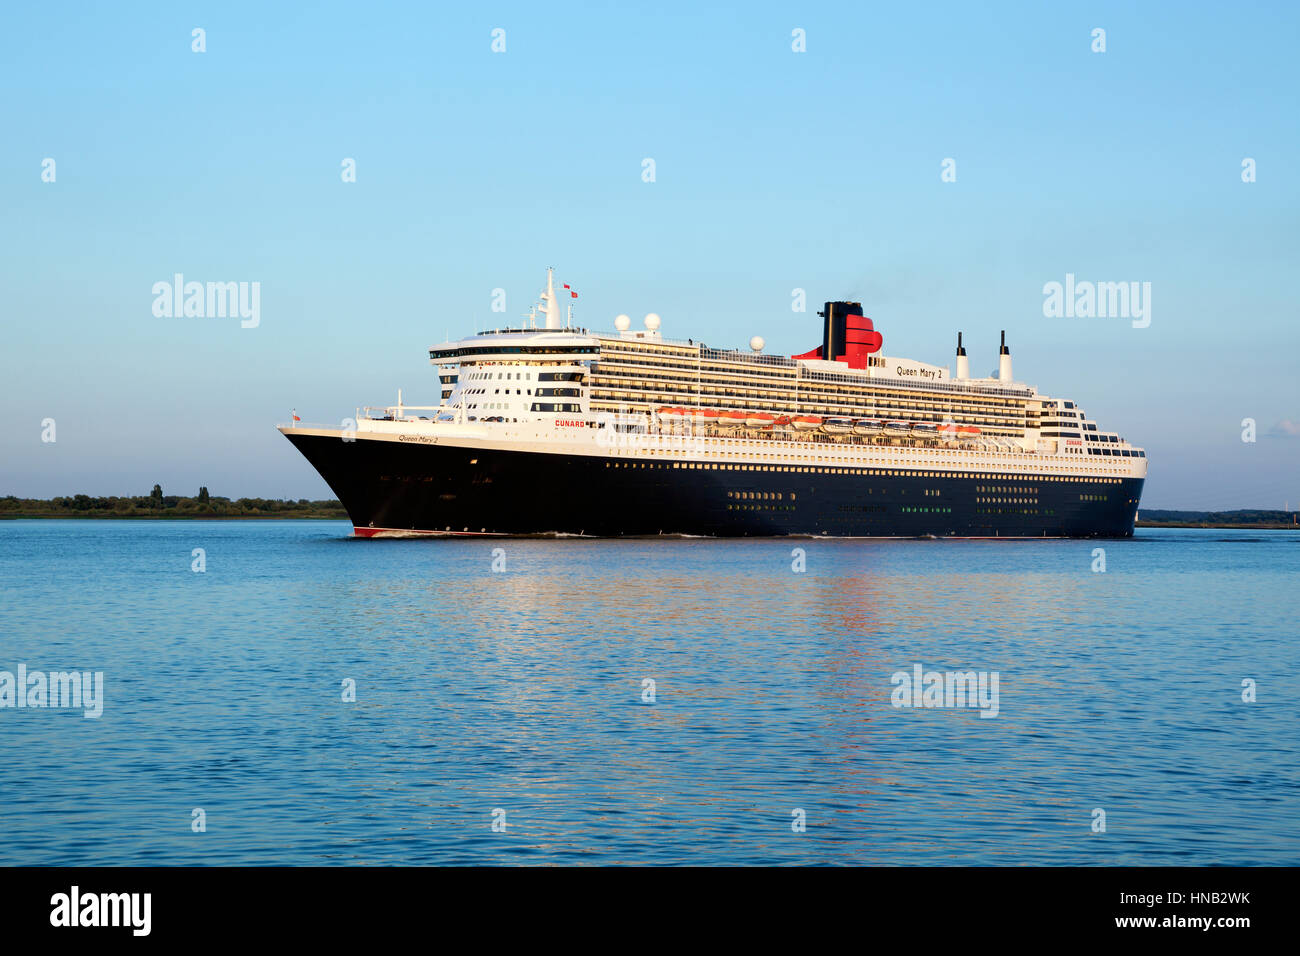 Stade, Germany - August 30, 2016: Luxury cruise liner RMS Queen Mary 2 departing from Hamburg to Southampton on - Stock Image